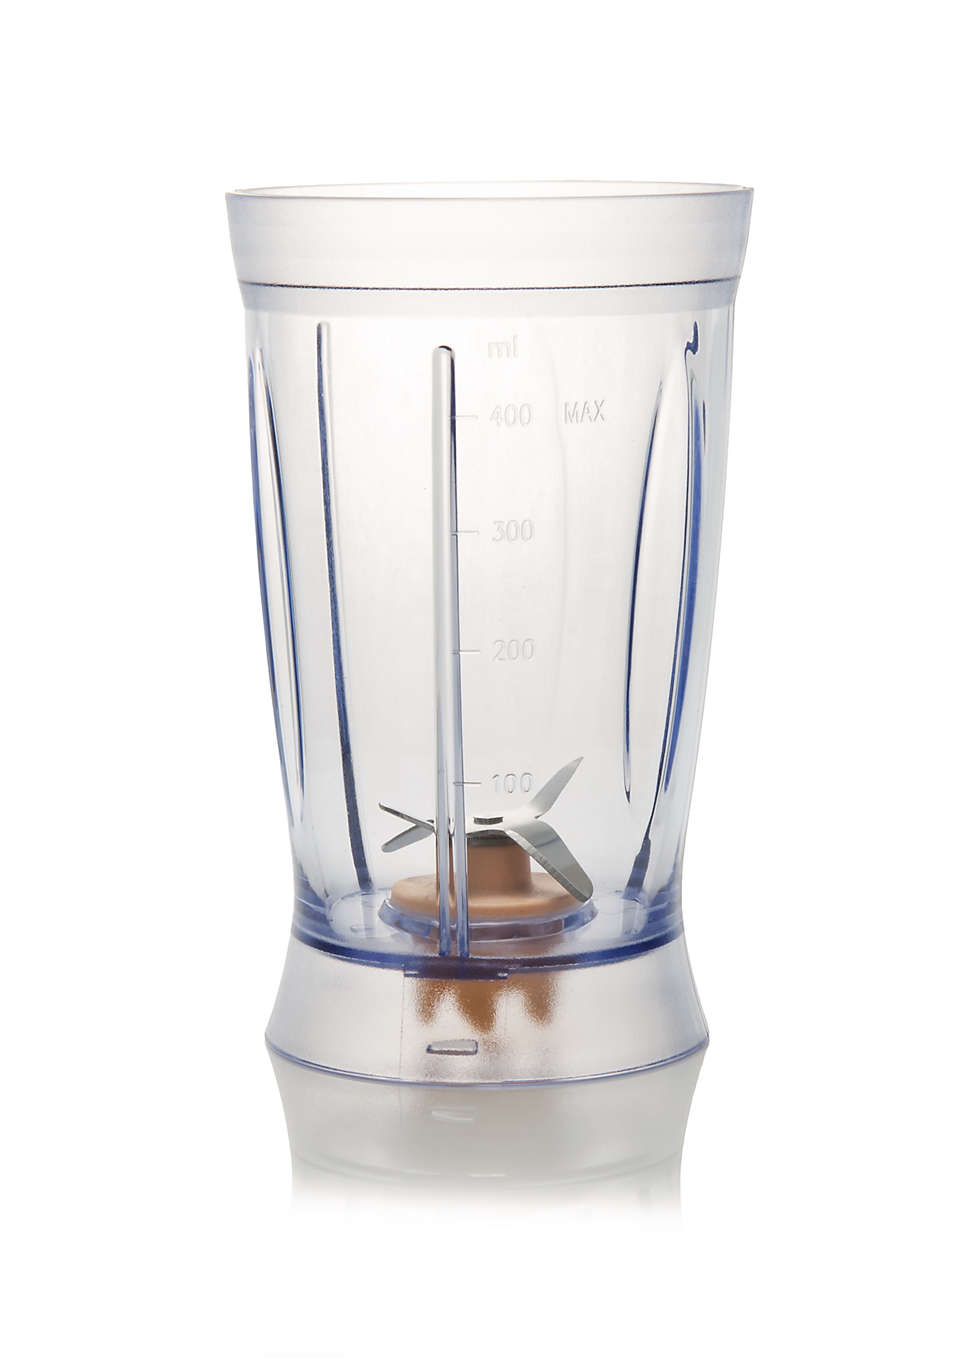 To replace your current Blender Jar.